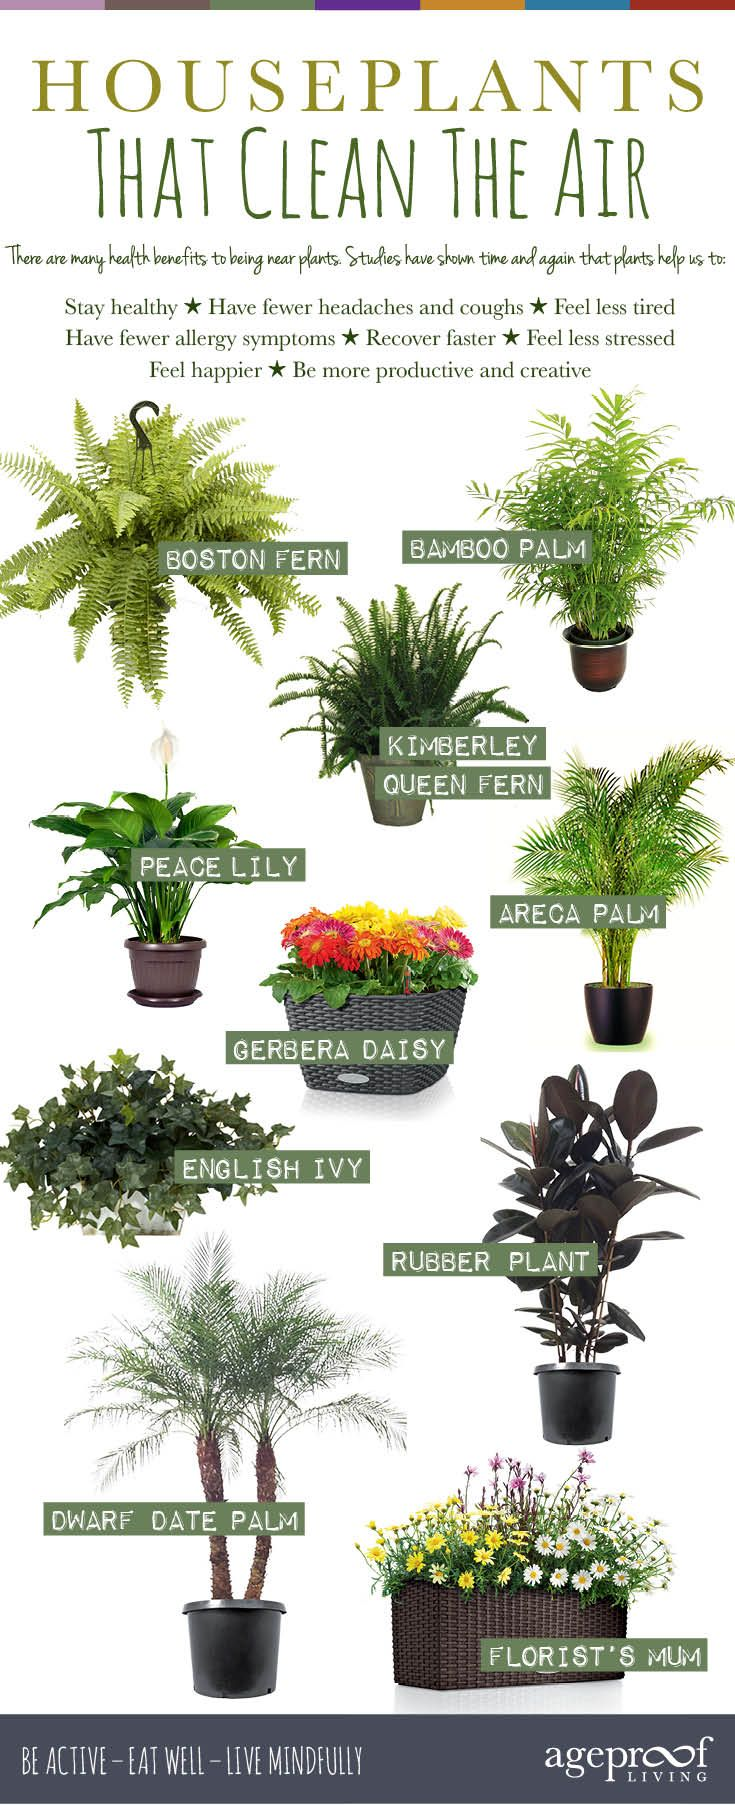 great-house-plants-indoor-gardening-best-air-cleaning-elegant-10-houseplants-that-clean-the-help-detox-your-home.jpg